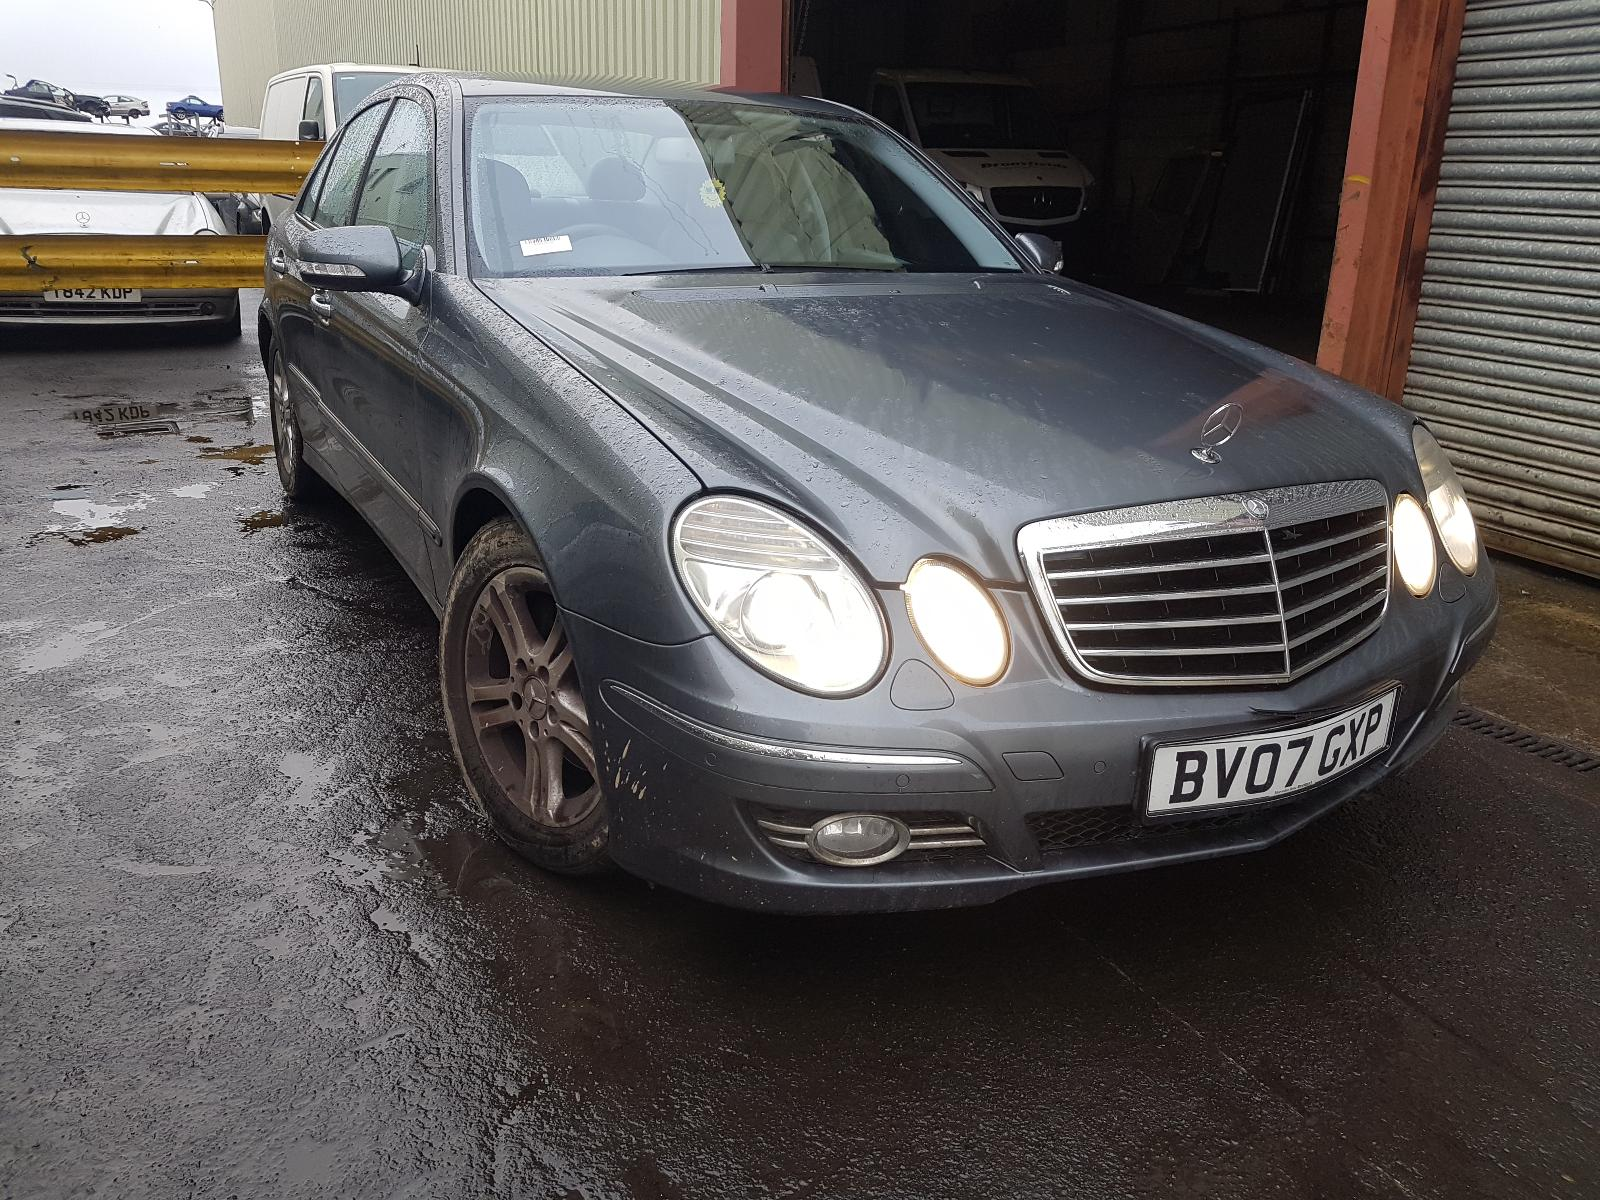 Image for a Mercedes E Class 2007 4 Door Saloon